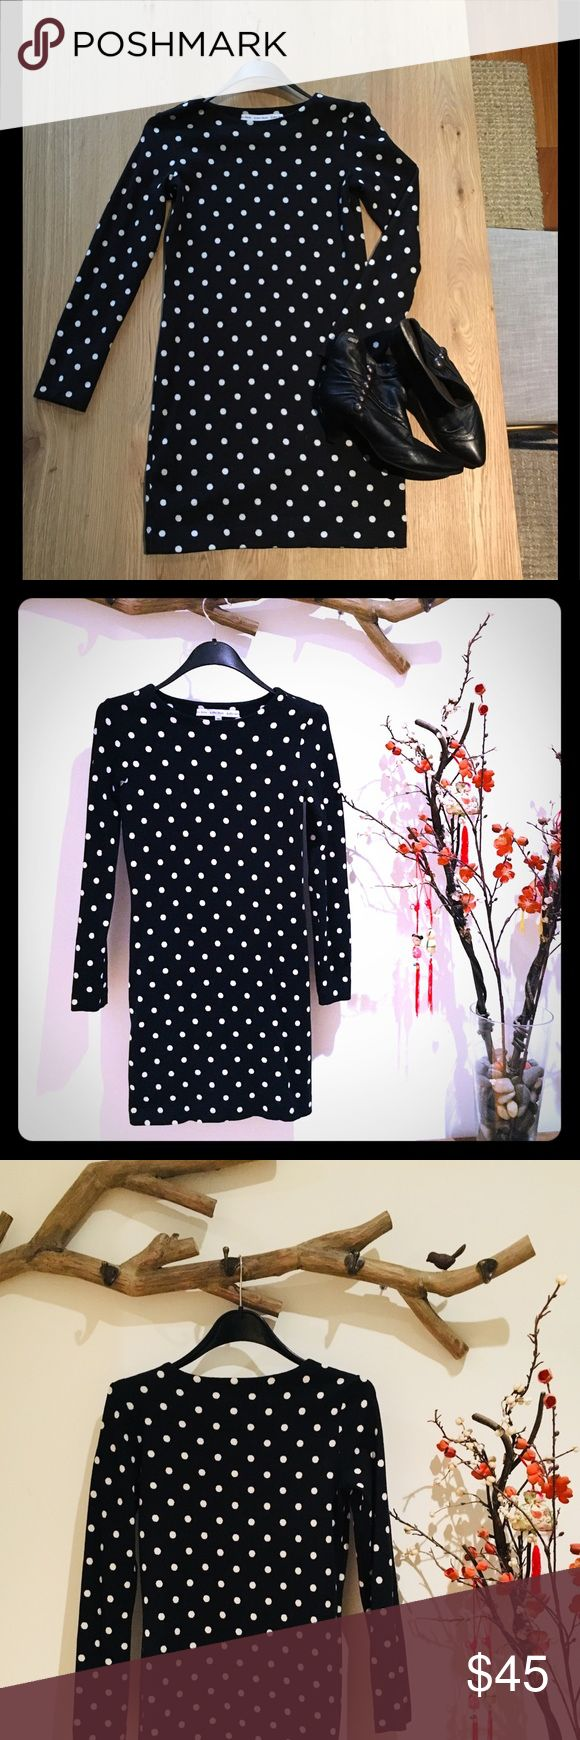 🔥SALE🔥Crepe Black and White Polka dot Dress Crepe Black and White polka dot dress. I an really good condition. I only wear it once for A girls night out! This is perfect for the upcoming holidays must outfit 🌸 & Other Stories Dresses Mini